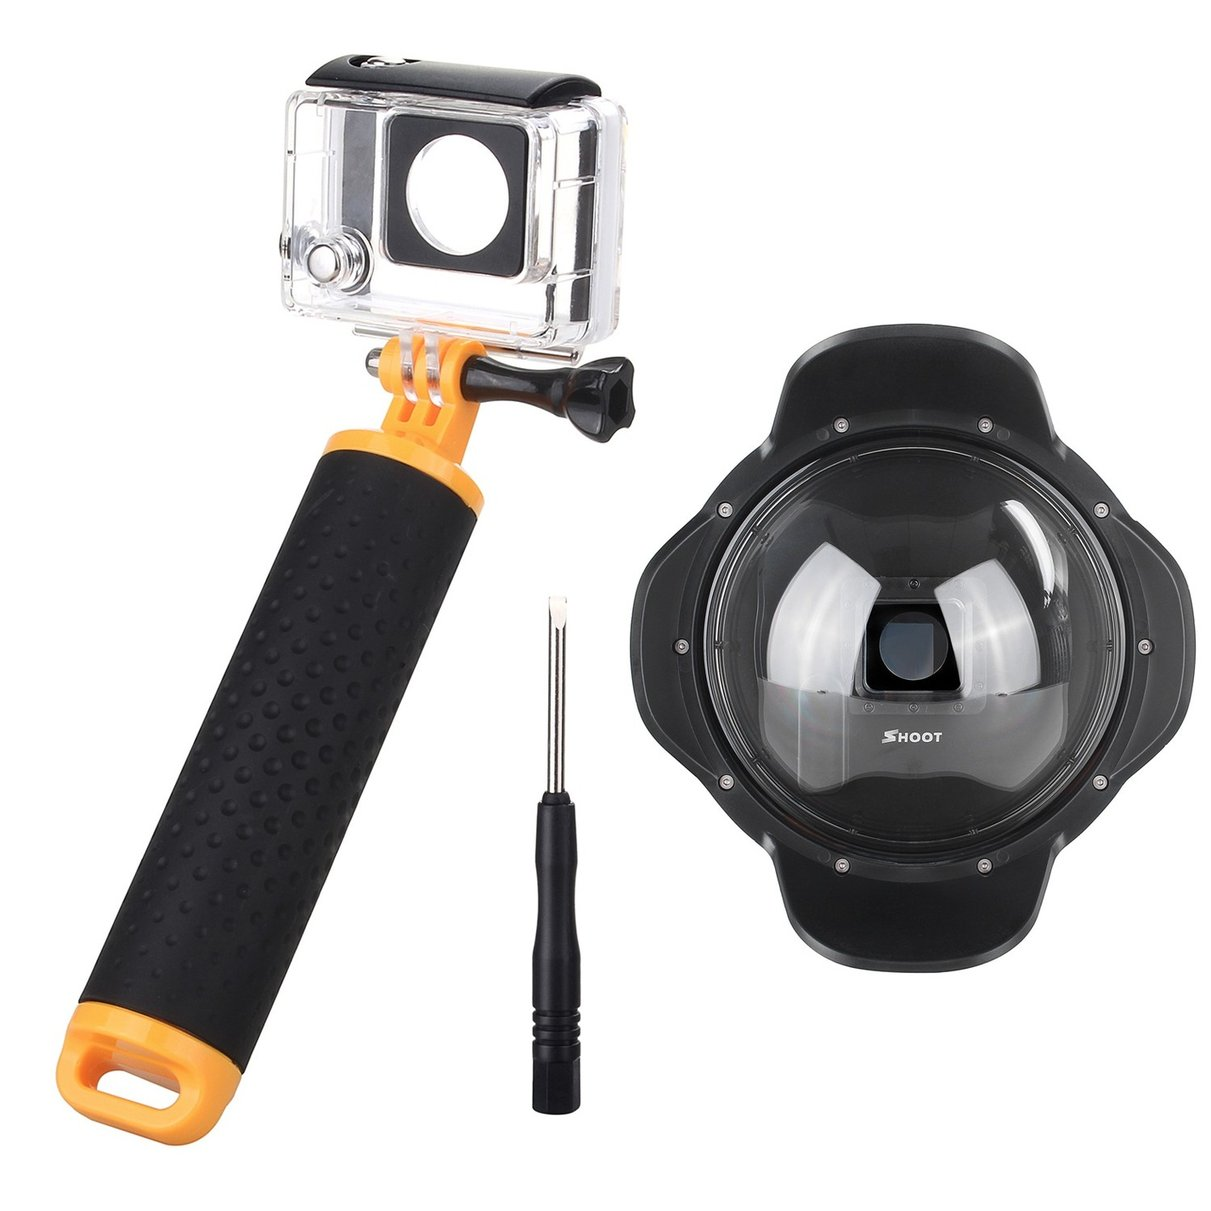 Shoot 6'' Diving Underwater Photography for Gopro Dome Port Cover with Floaty Handle with Lens Hood for GoPro Hero 3+/4 2pcs 3d printing lens cover protector sun hood shade fr gopro hero 3 3 4 camera